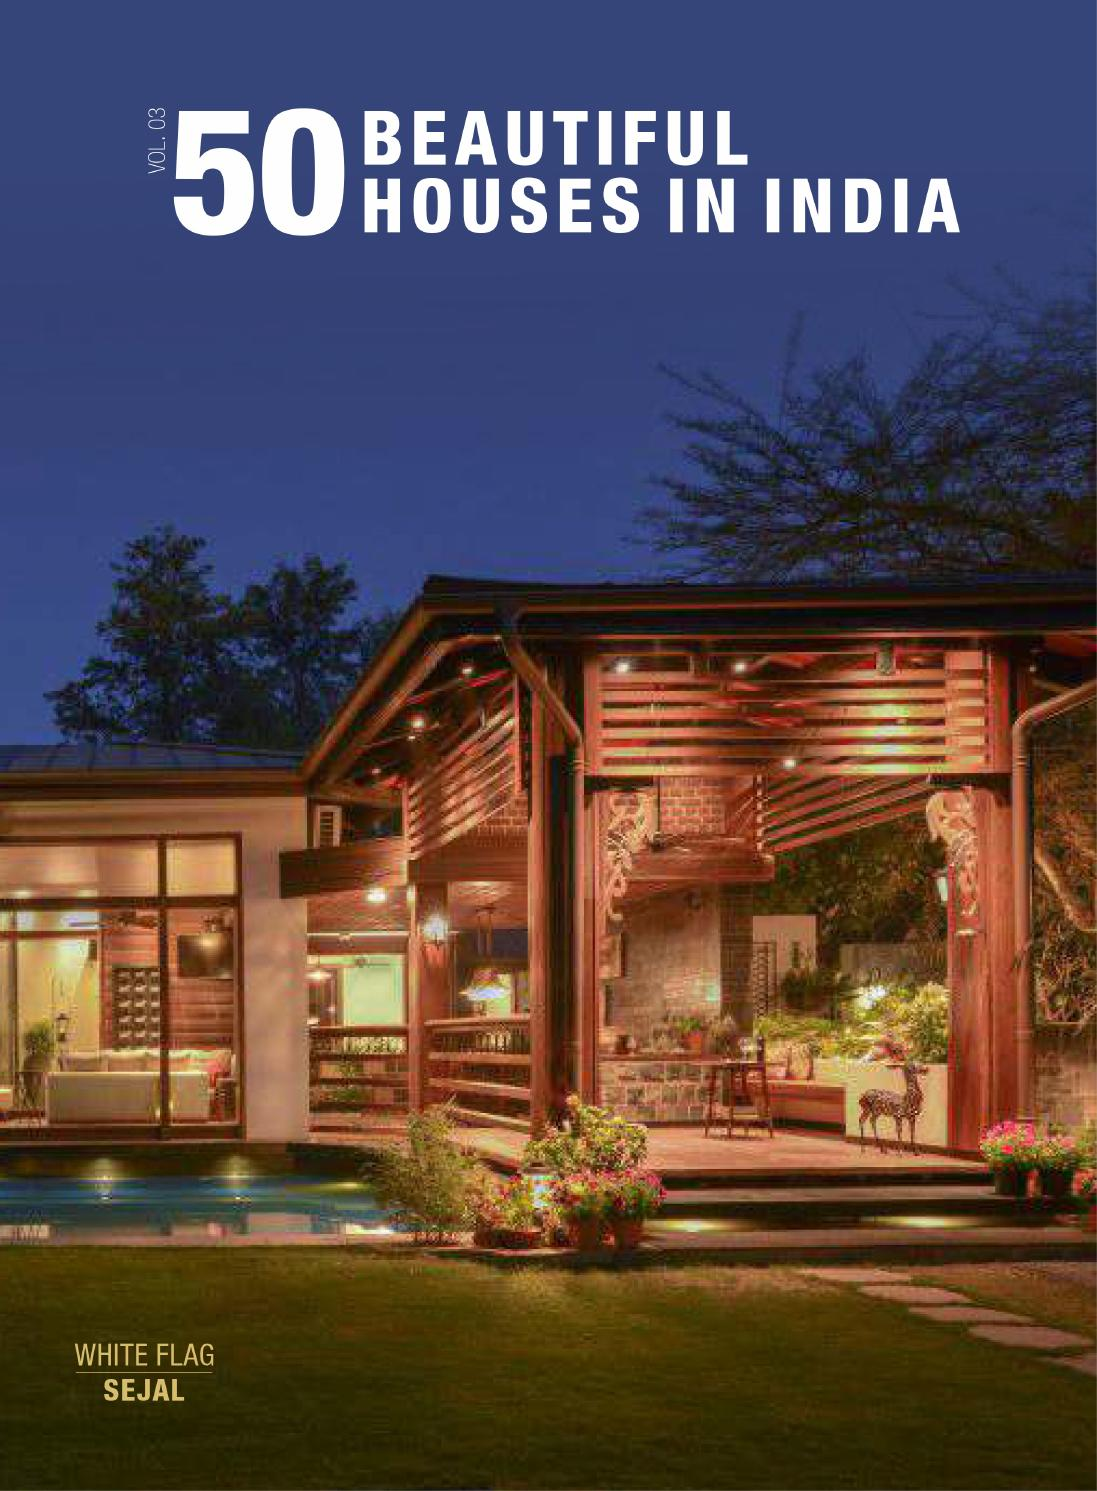 50 beautiful houses in india vol 3 by spicetree design for Beautiful house in